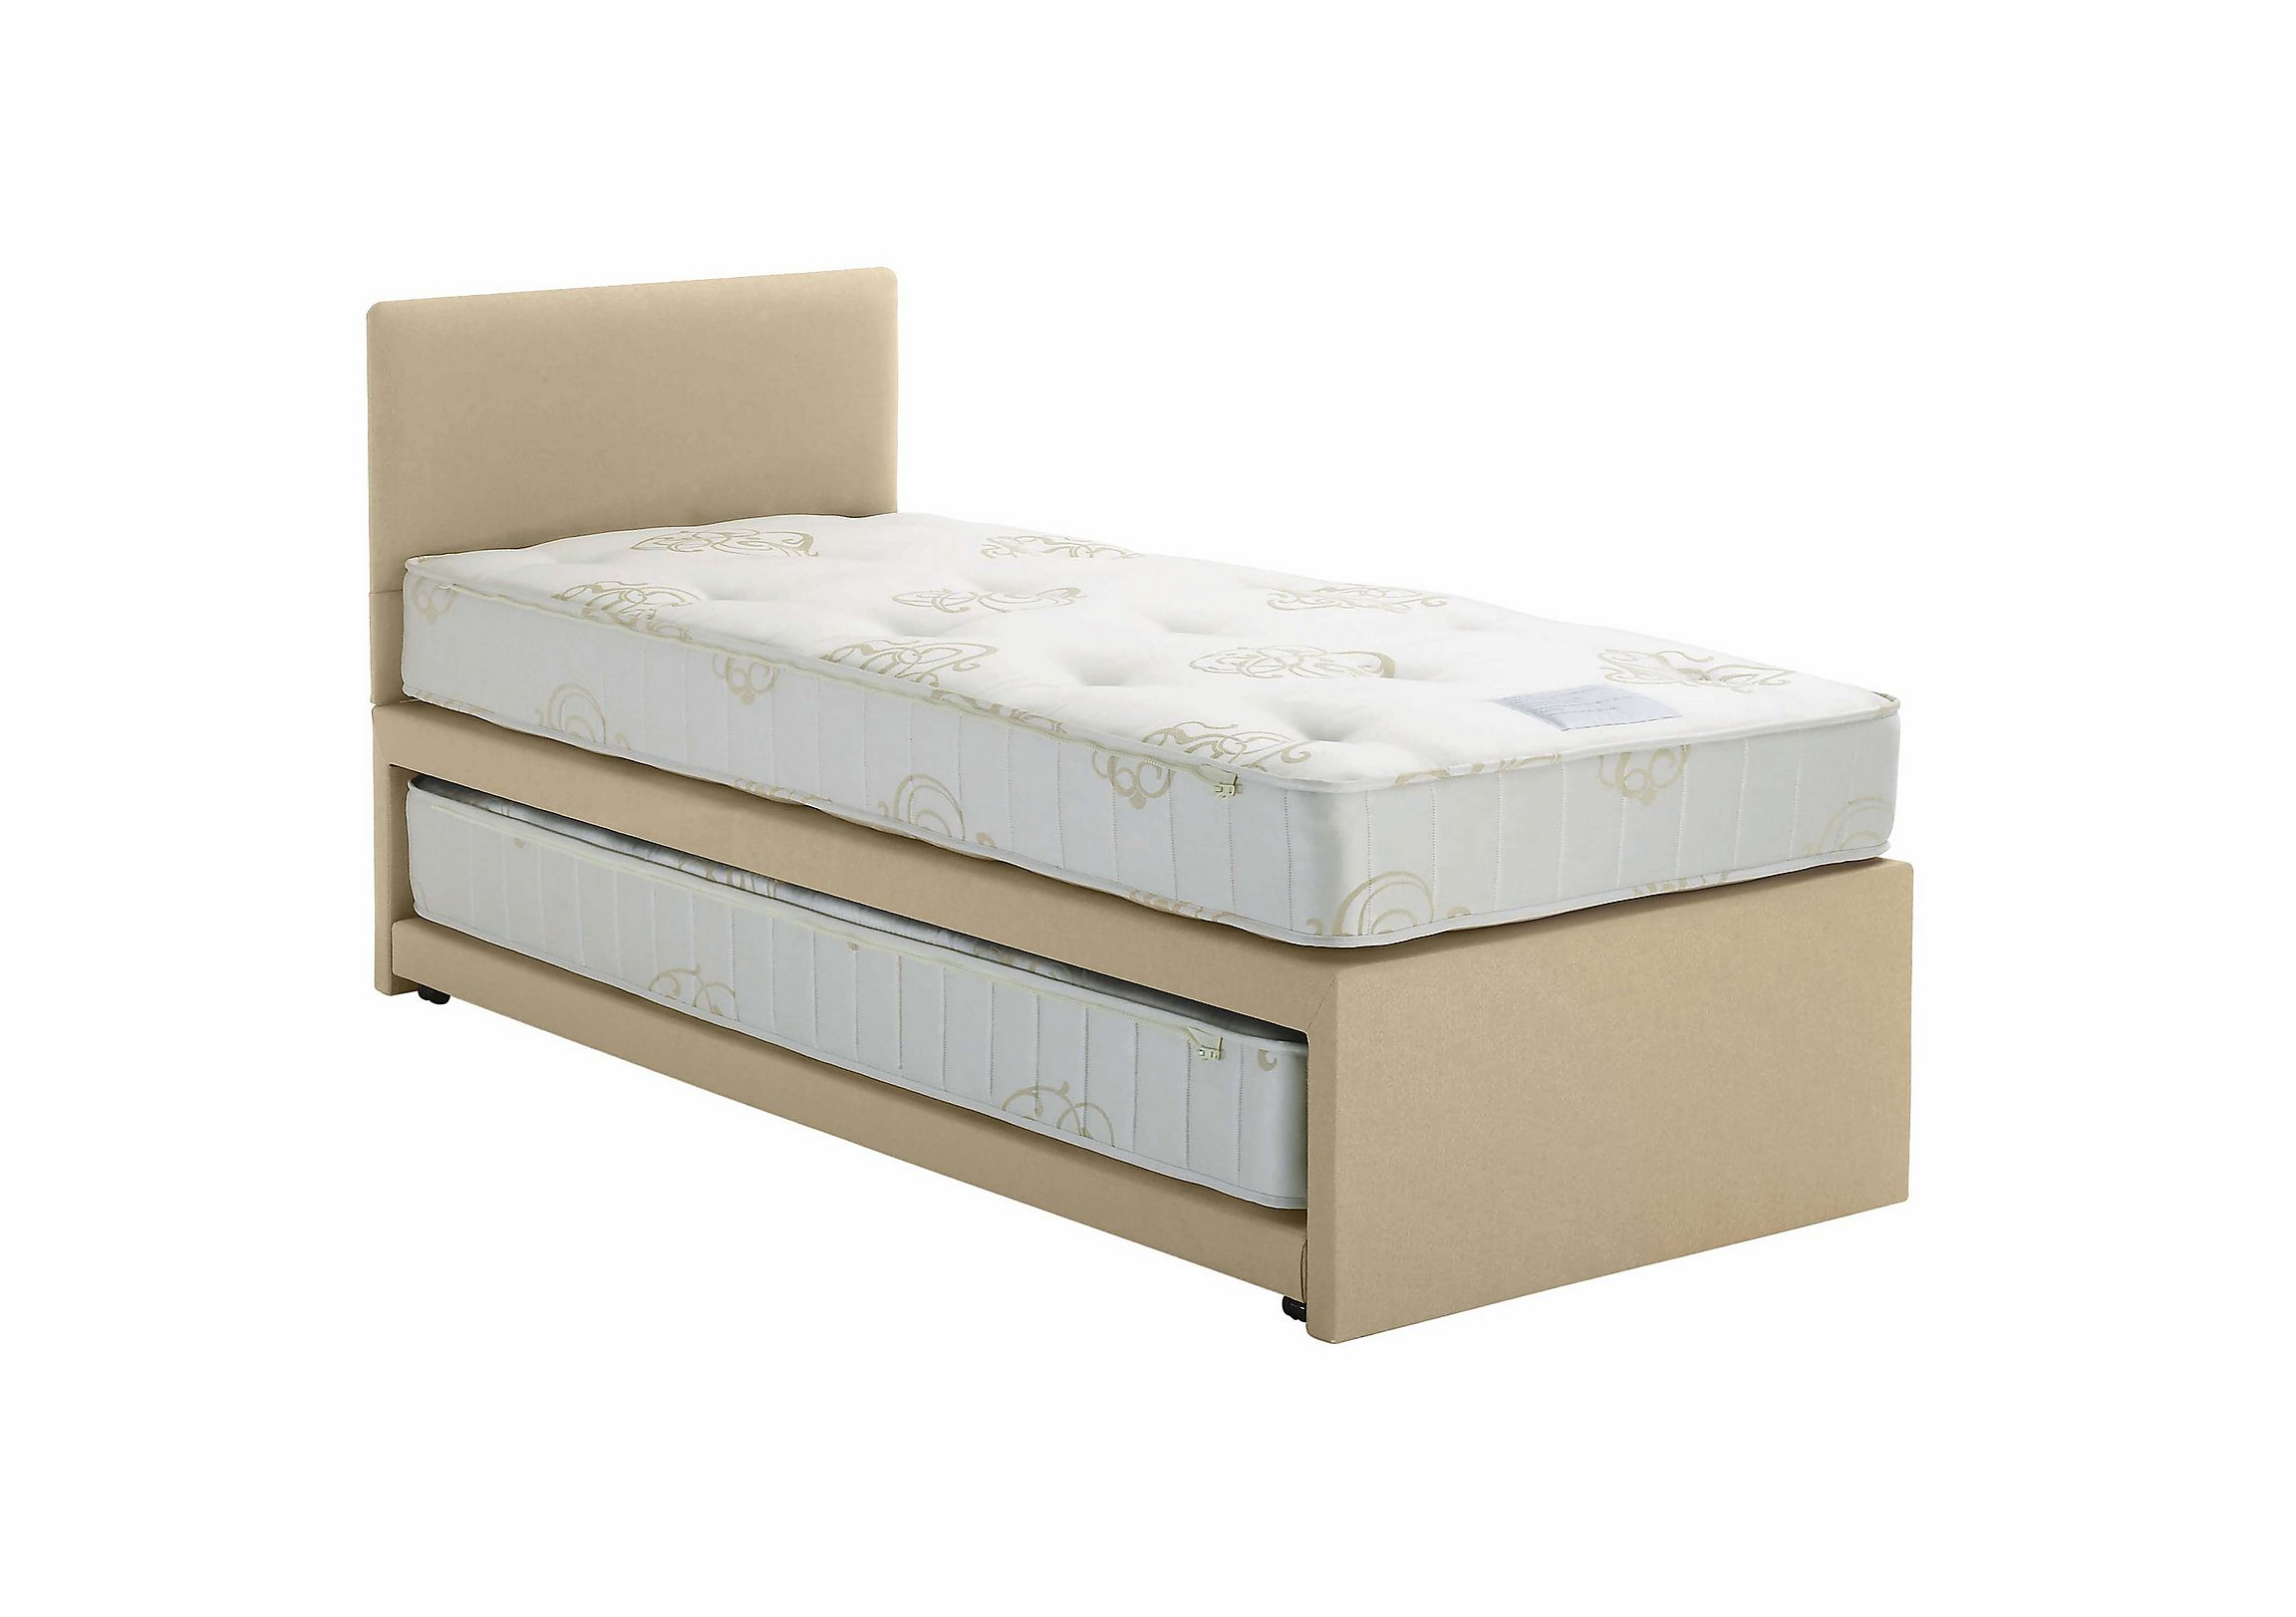 Single Mattress Free Delivery Hypnos Trio Guest Bed Free Pillows Free Delivery